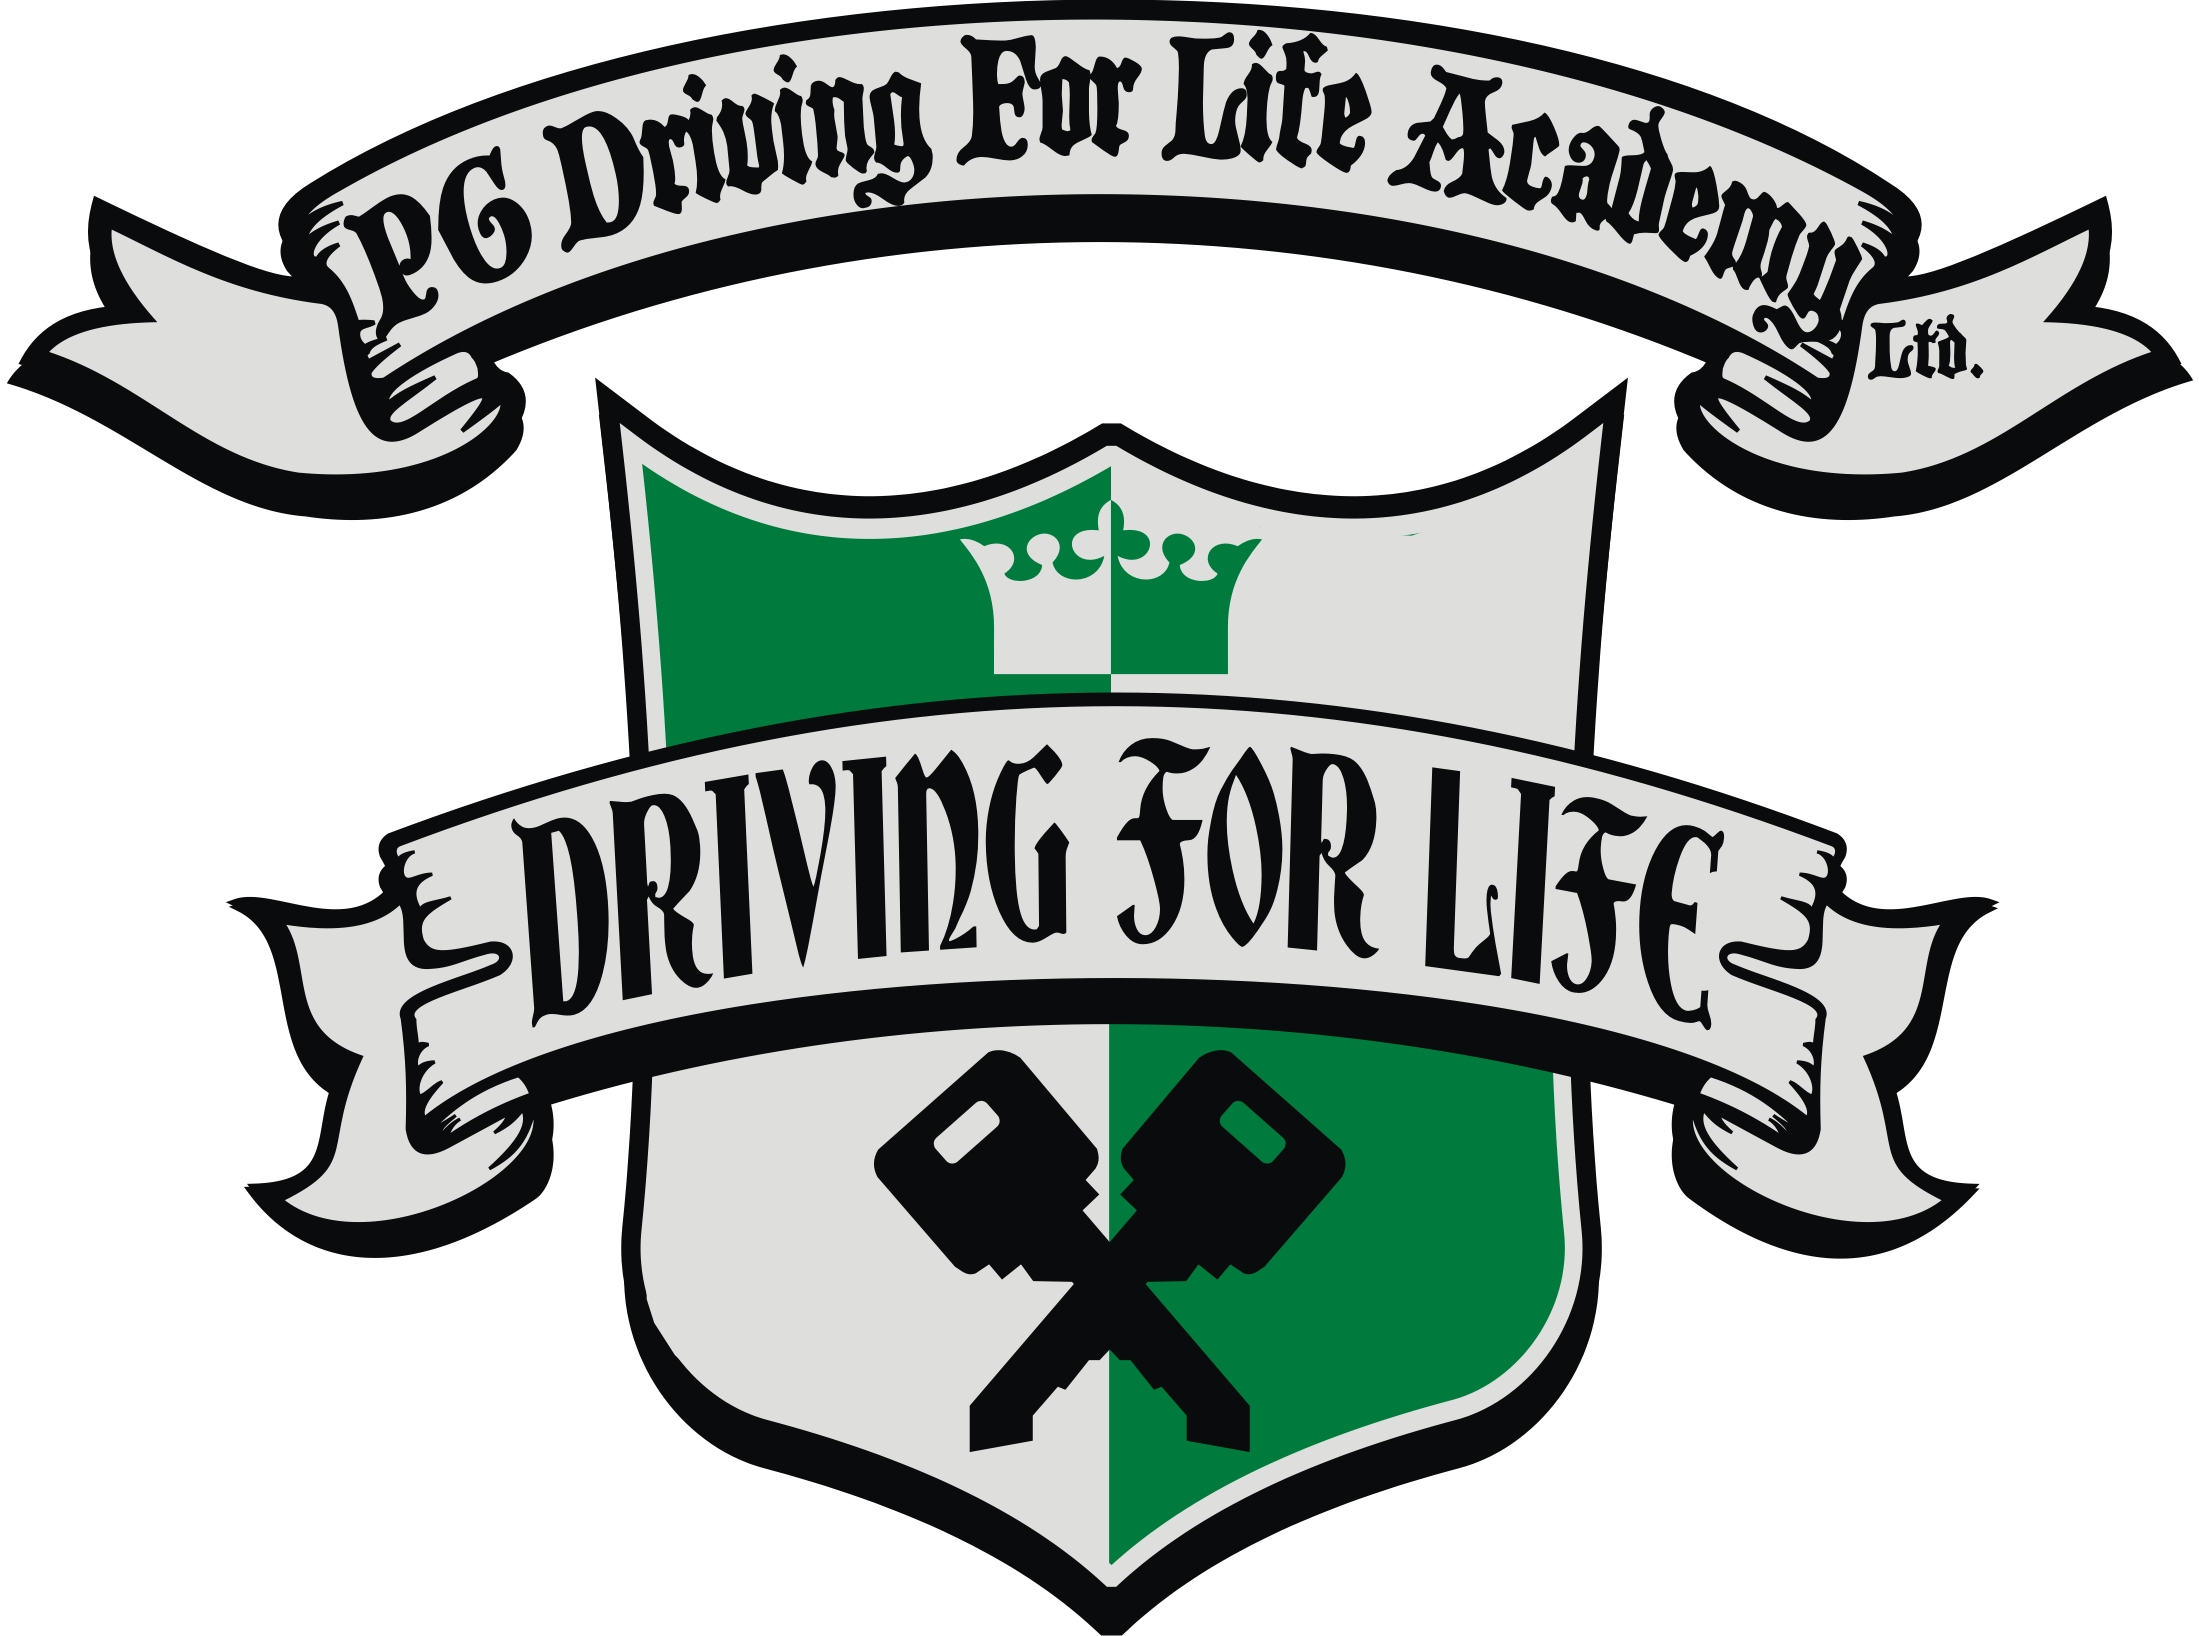 PG DRIVING FOR LIFE ACADEMY LTD logo